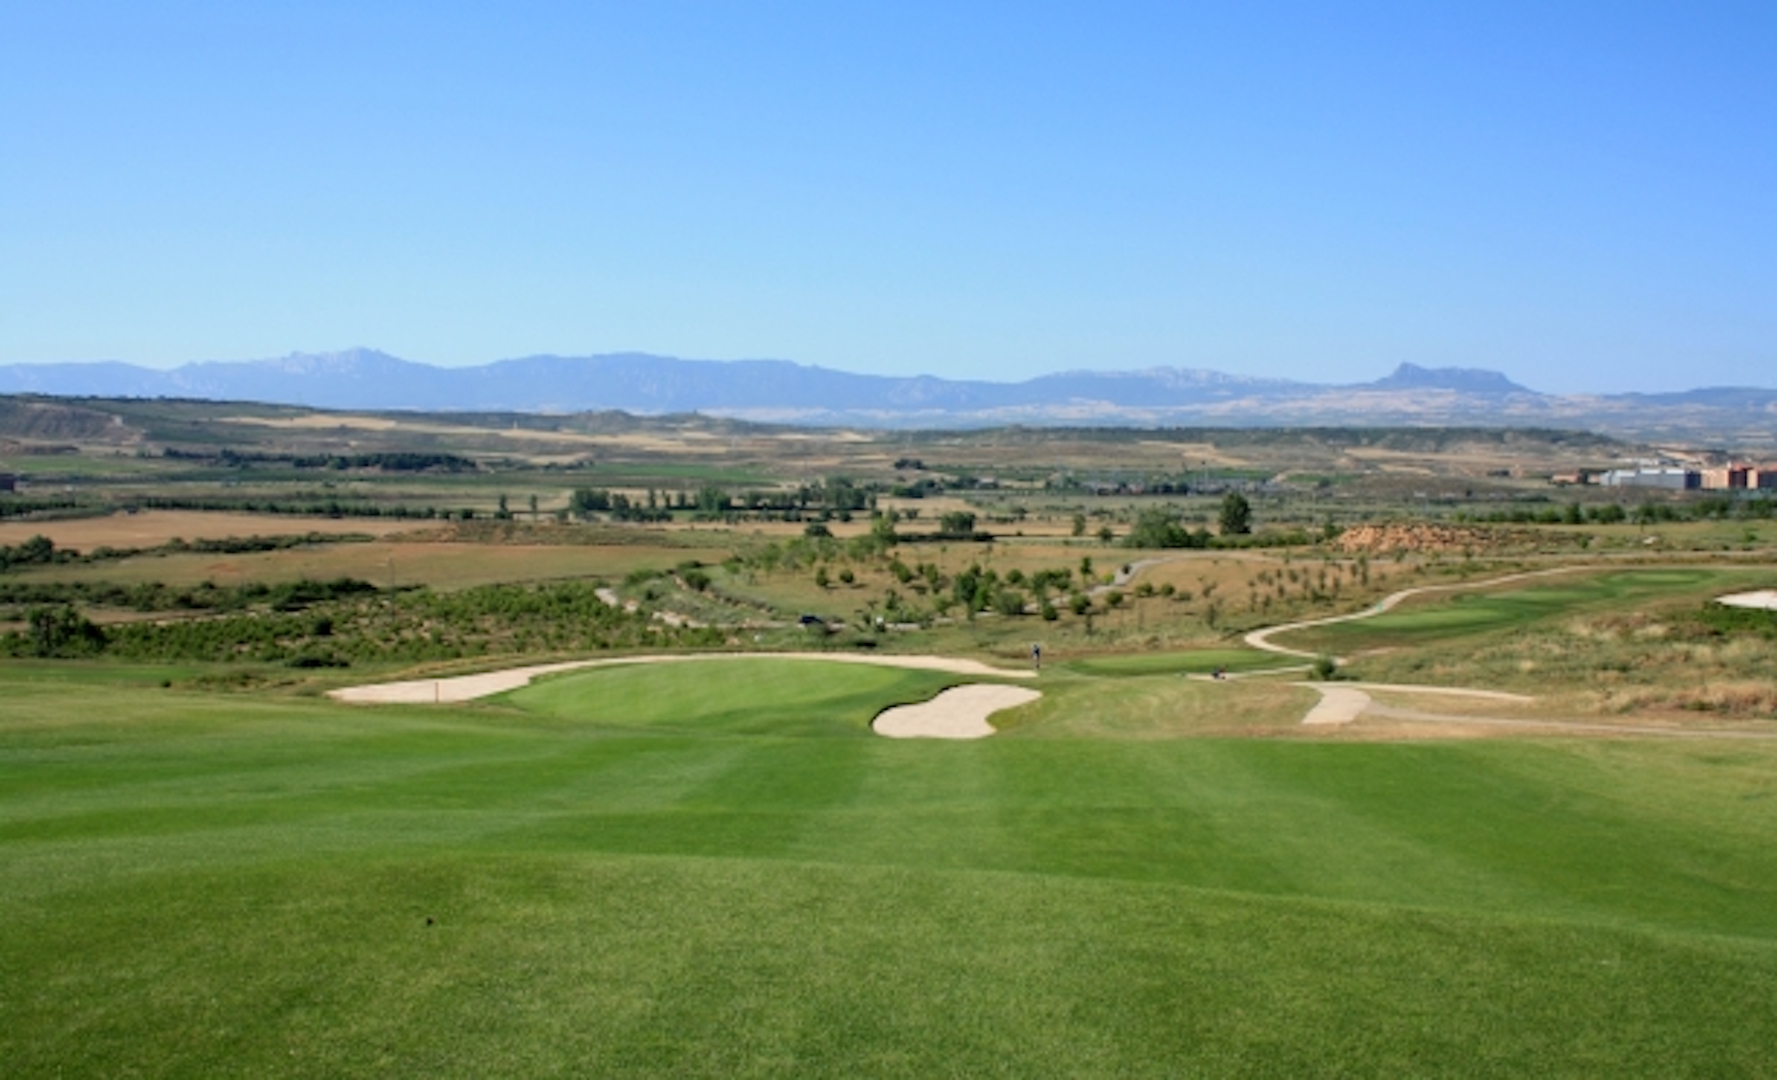 Fine Wine, Golf and Tapas - what's not to like?